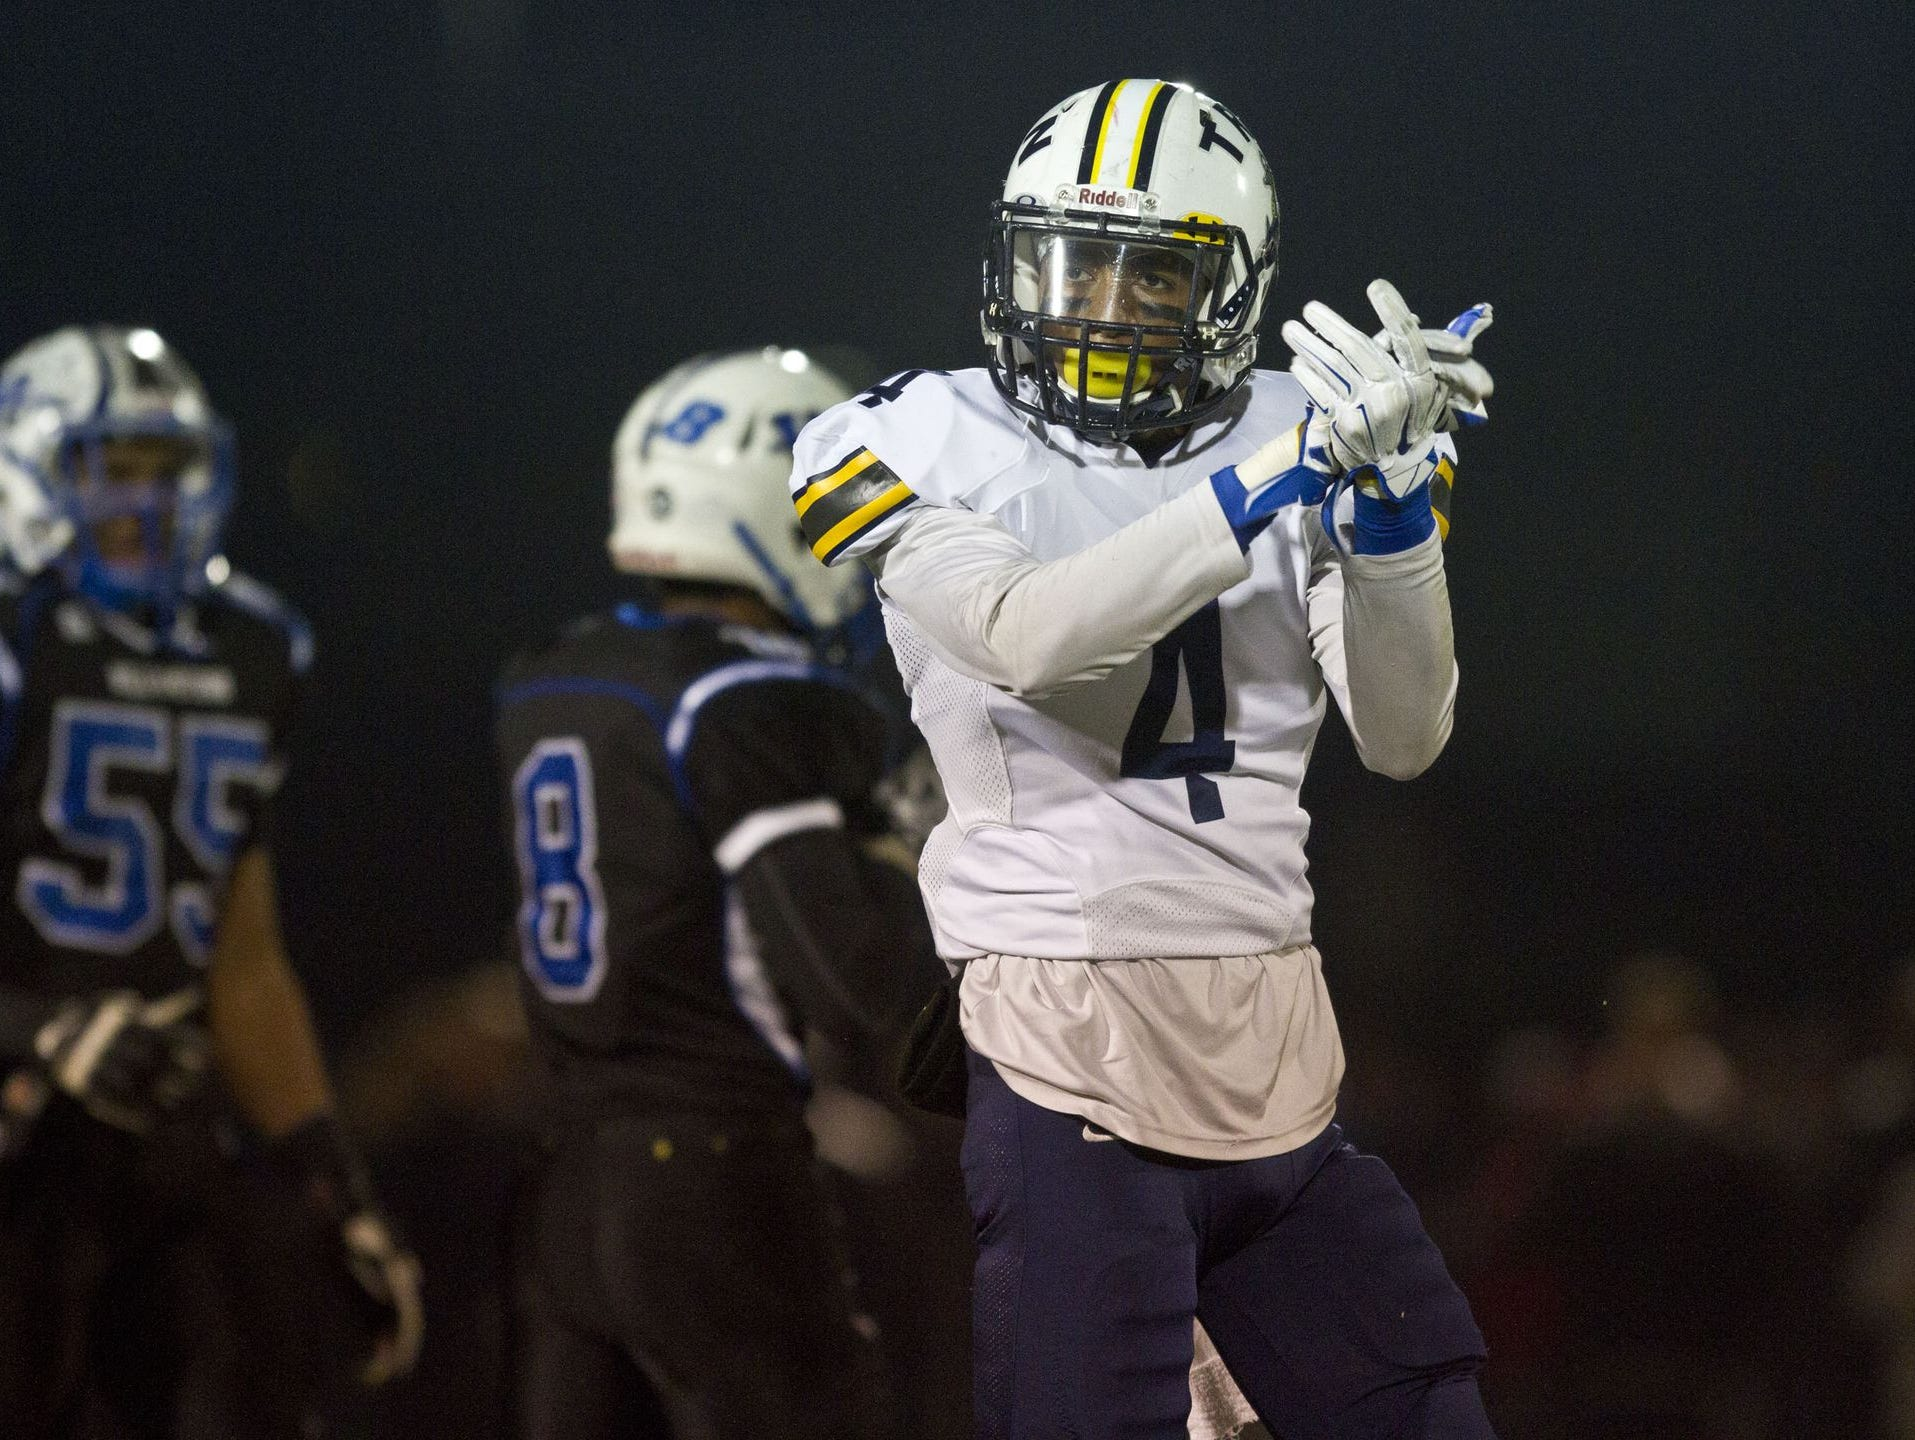 Toms River North junior wideout Darrion Carrington made several big plays against Williamstown in the NJSIAA South Group V championship game on Dec. 5, 2015 at Rowan University